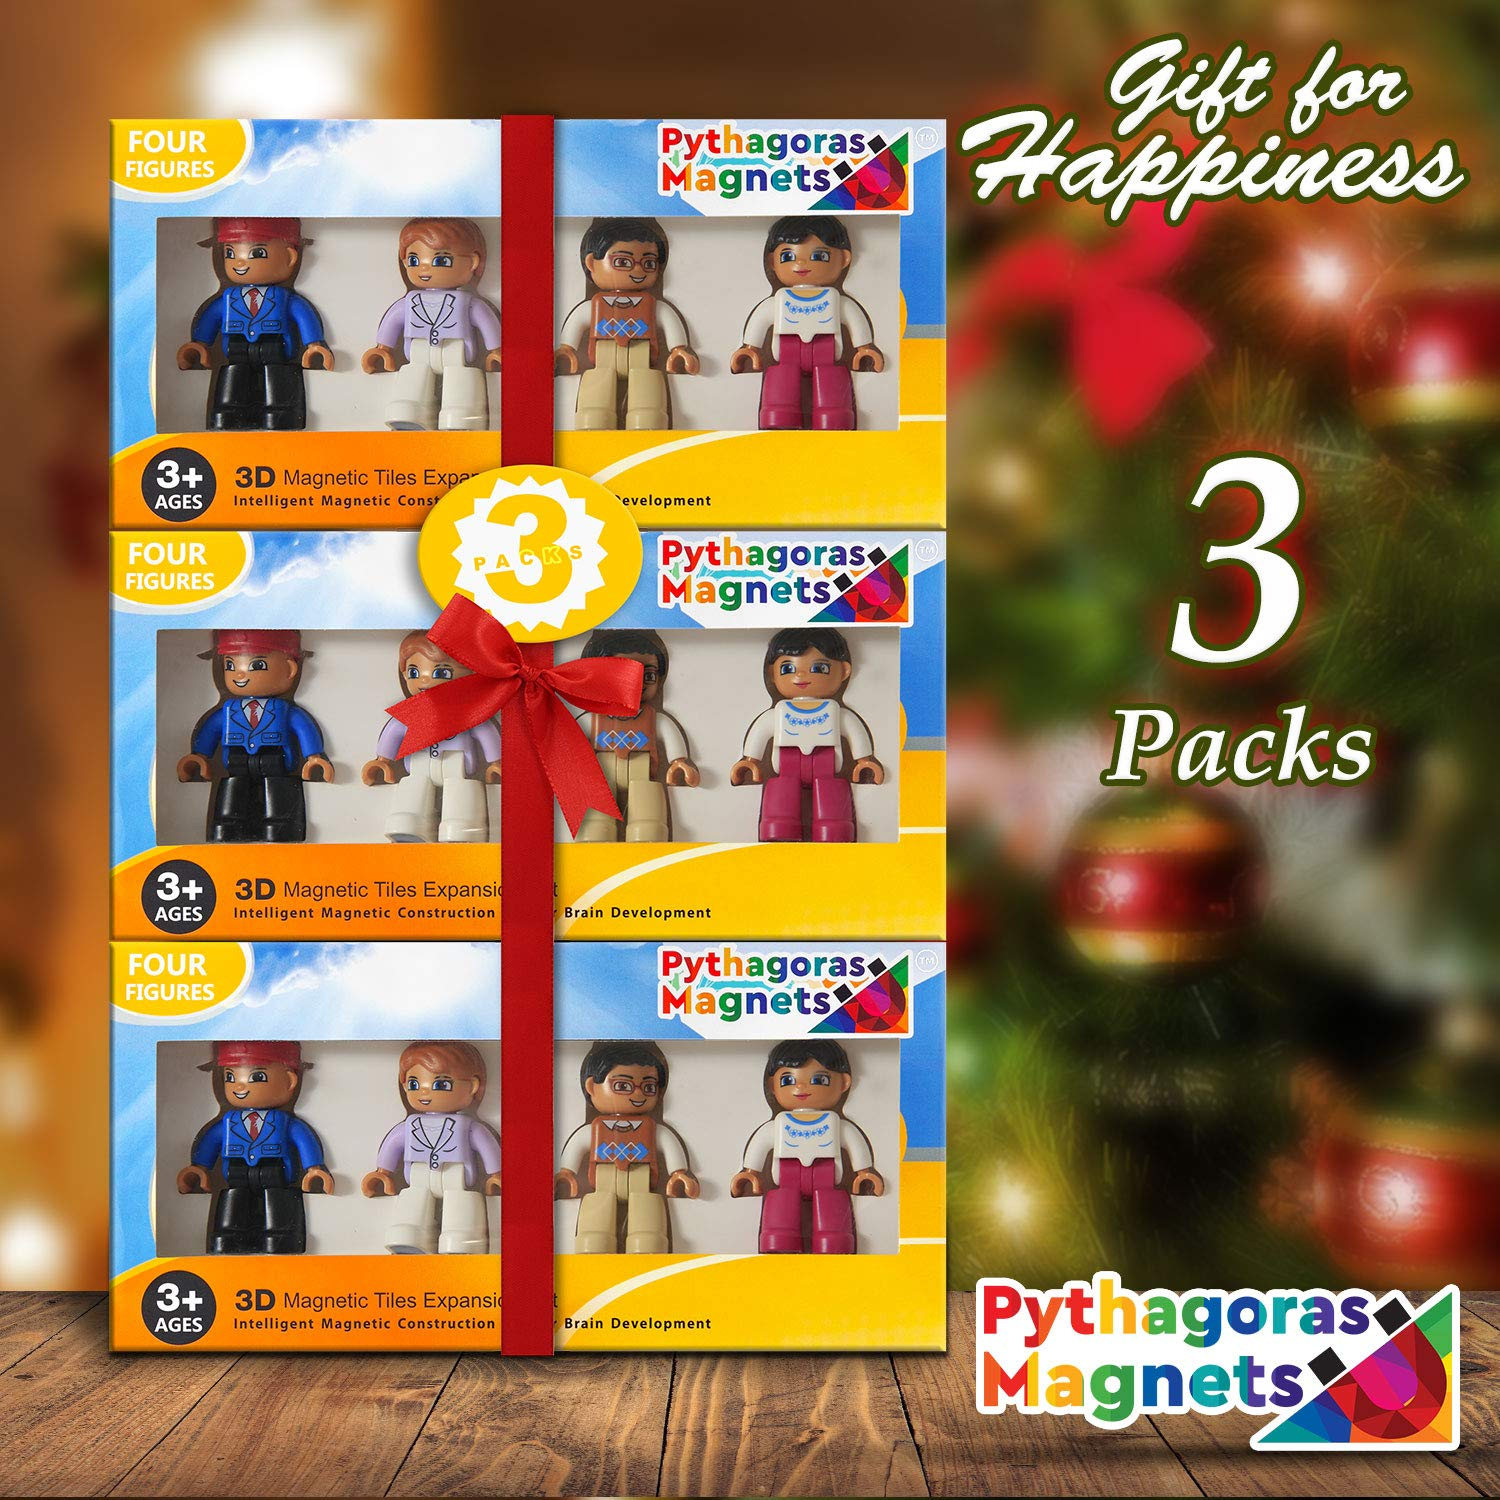 Magnetic Figures Set of 4 - Community Toy People Magnetic Tiles Expansion Pack for Boys and Girls - Pilot, Teacher, Lawyer, Coach Educational STEM Toys Add on Sets for Magnetic Blocks by Pythagoras Magnets (Image #1)